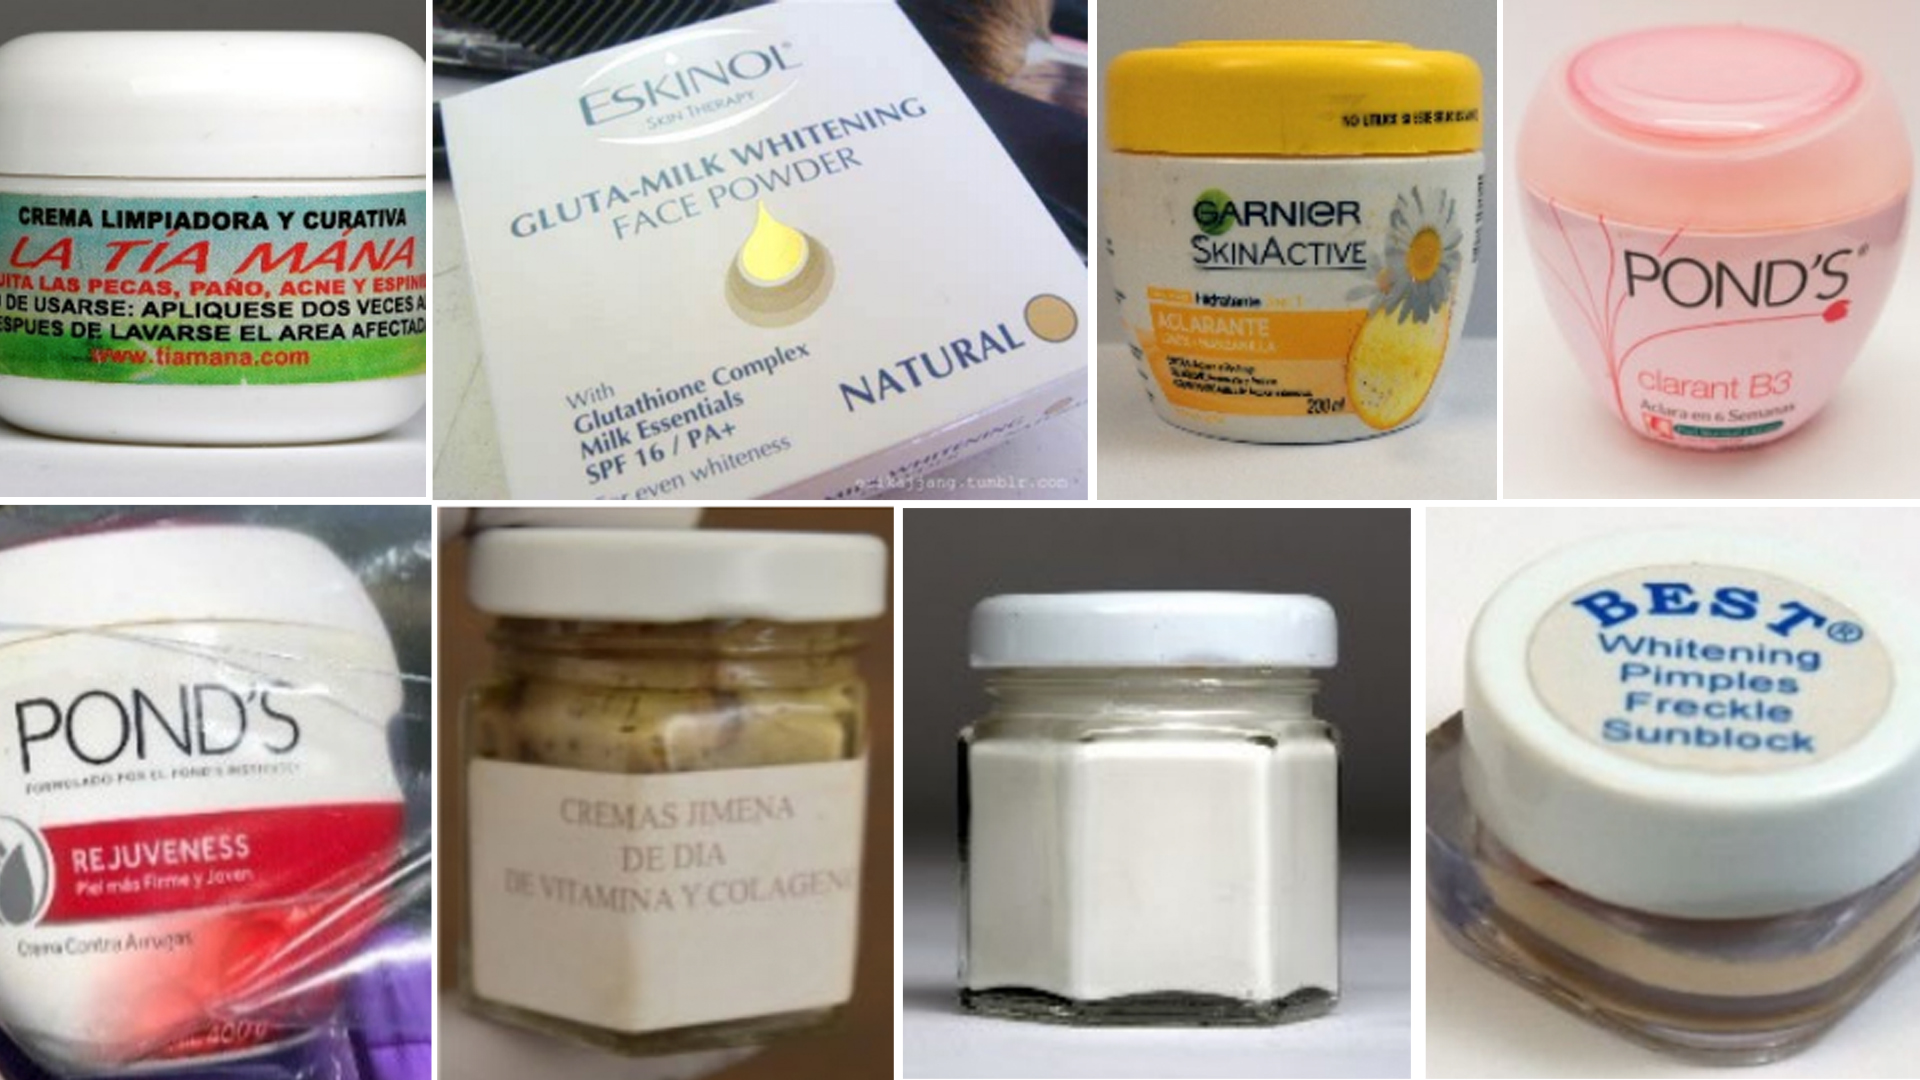 Products found to be containing dangerous levels of mercury are seen in photos provided by the California Department of Public Health.